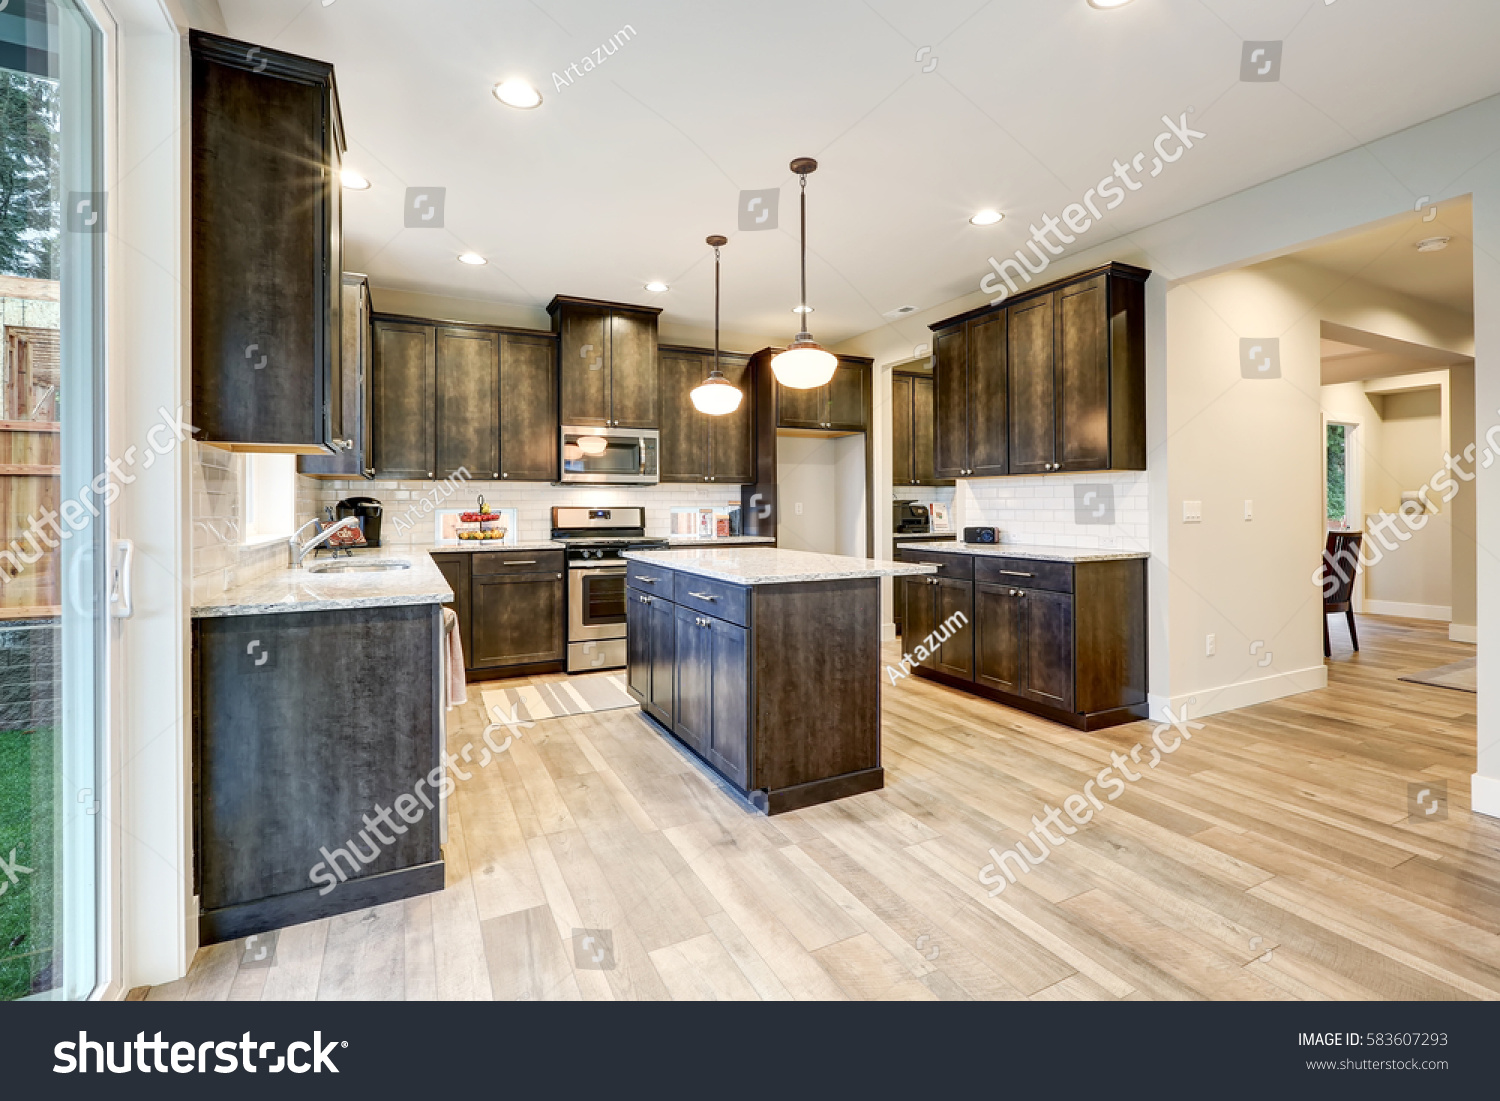 Superb Light Filled Northwest Kitchen Design With Kitchen Island, Natural Brown  Cabinets Topped With Granite Countertops